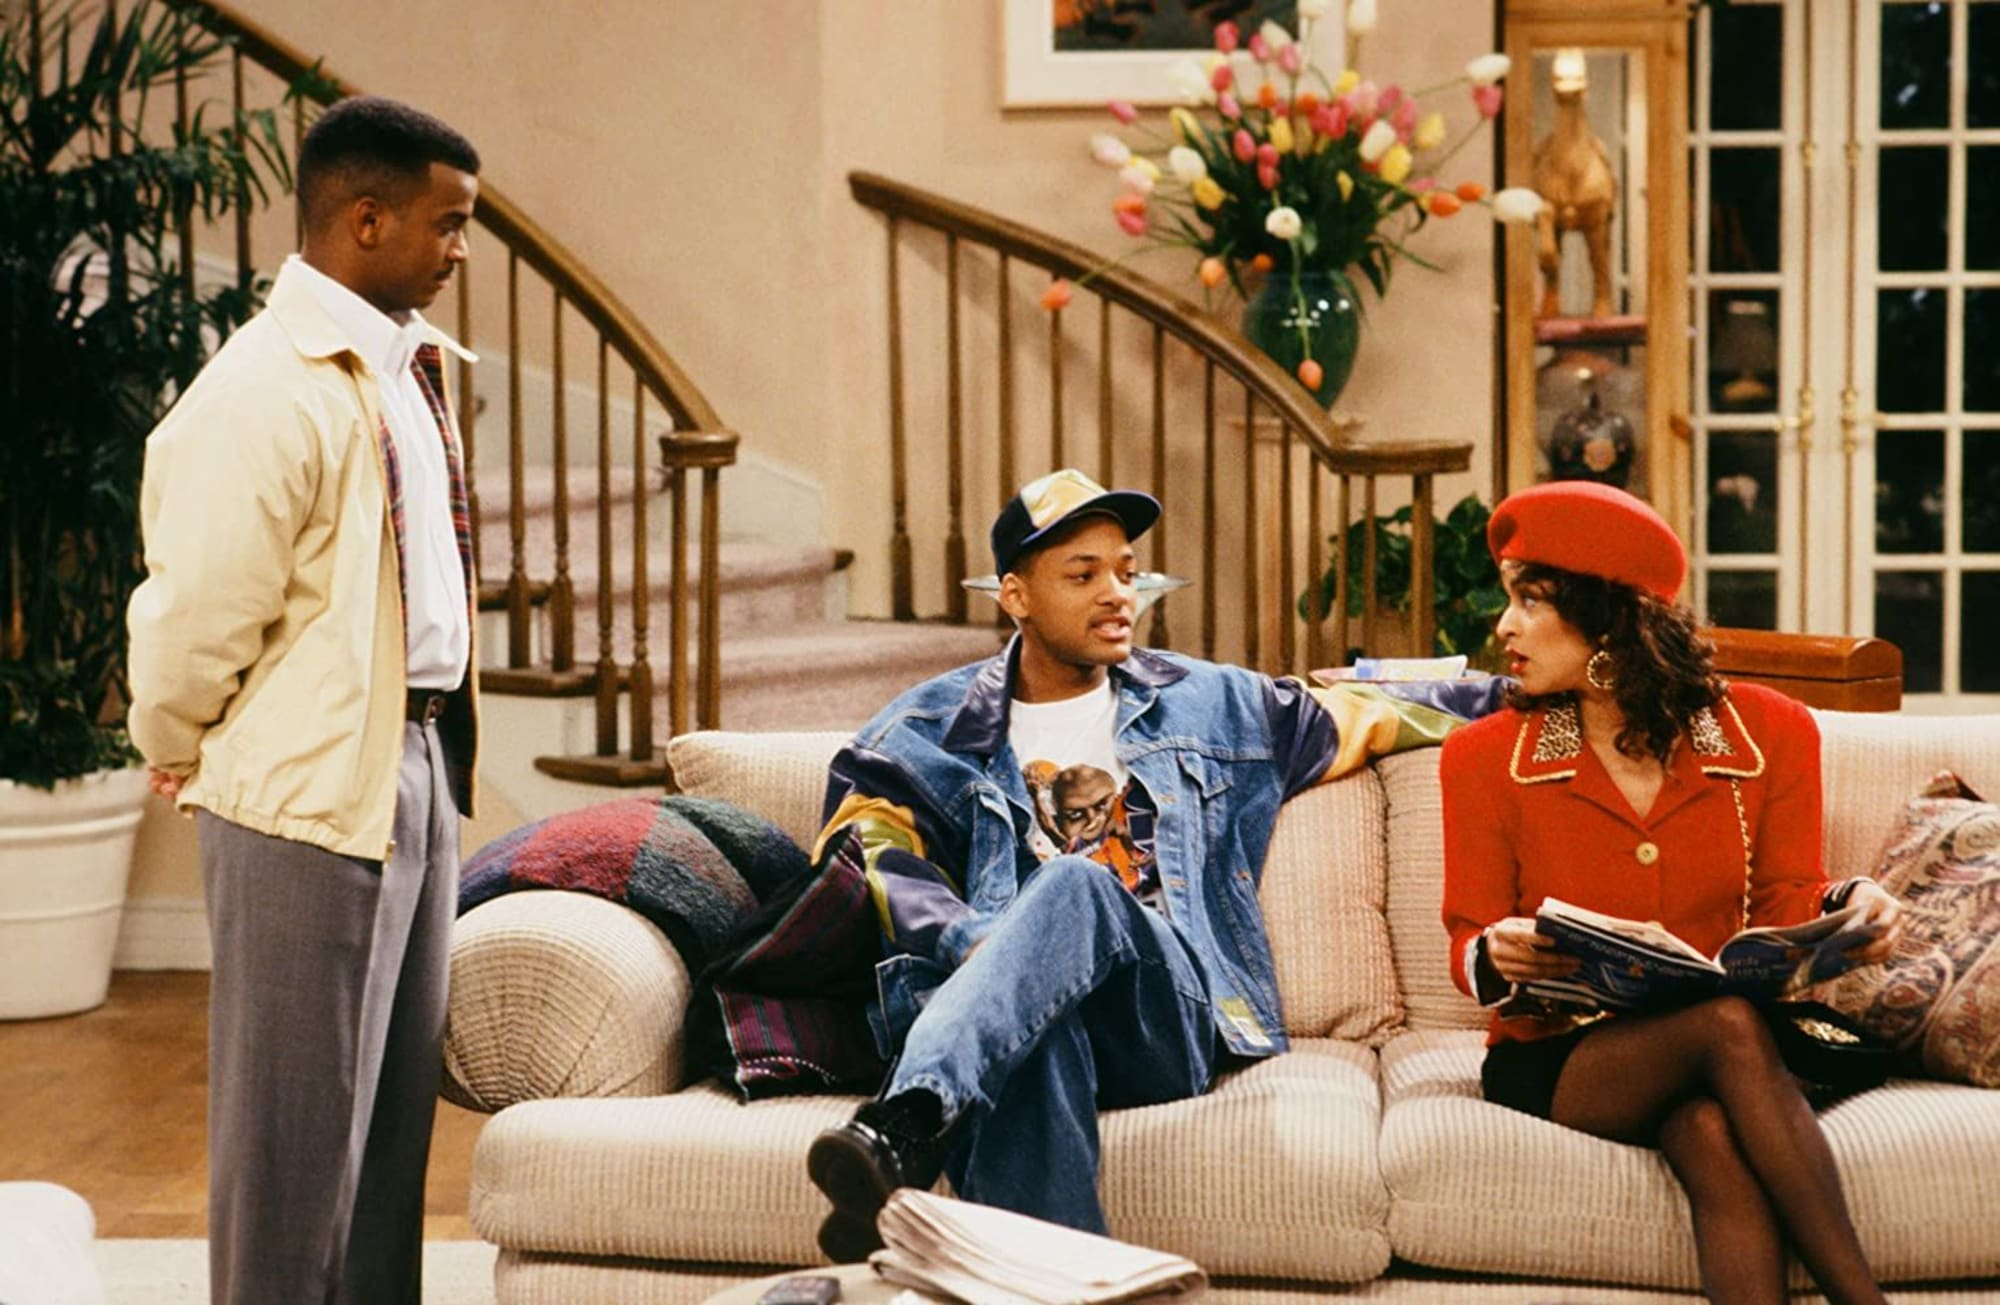 Viral video from 2019 has spawned an actual Fresh Prince of Bel-Air reboot